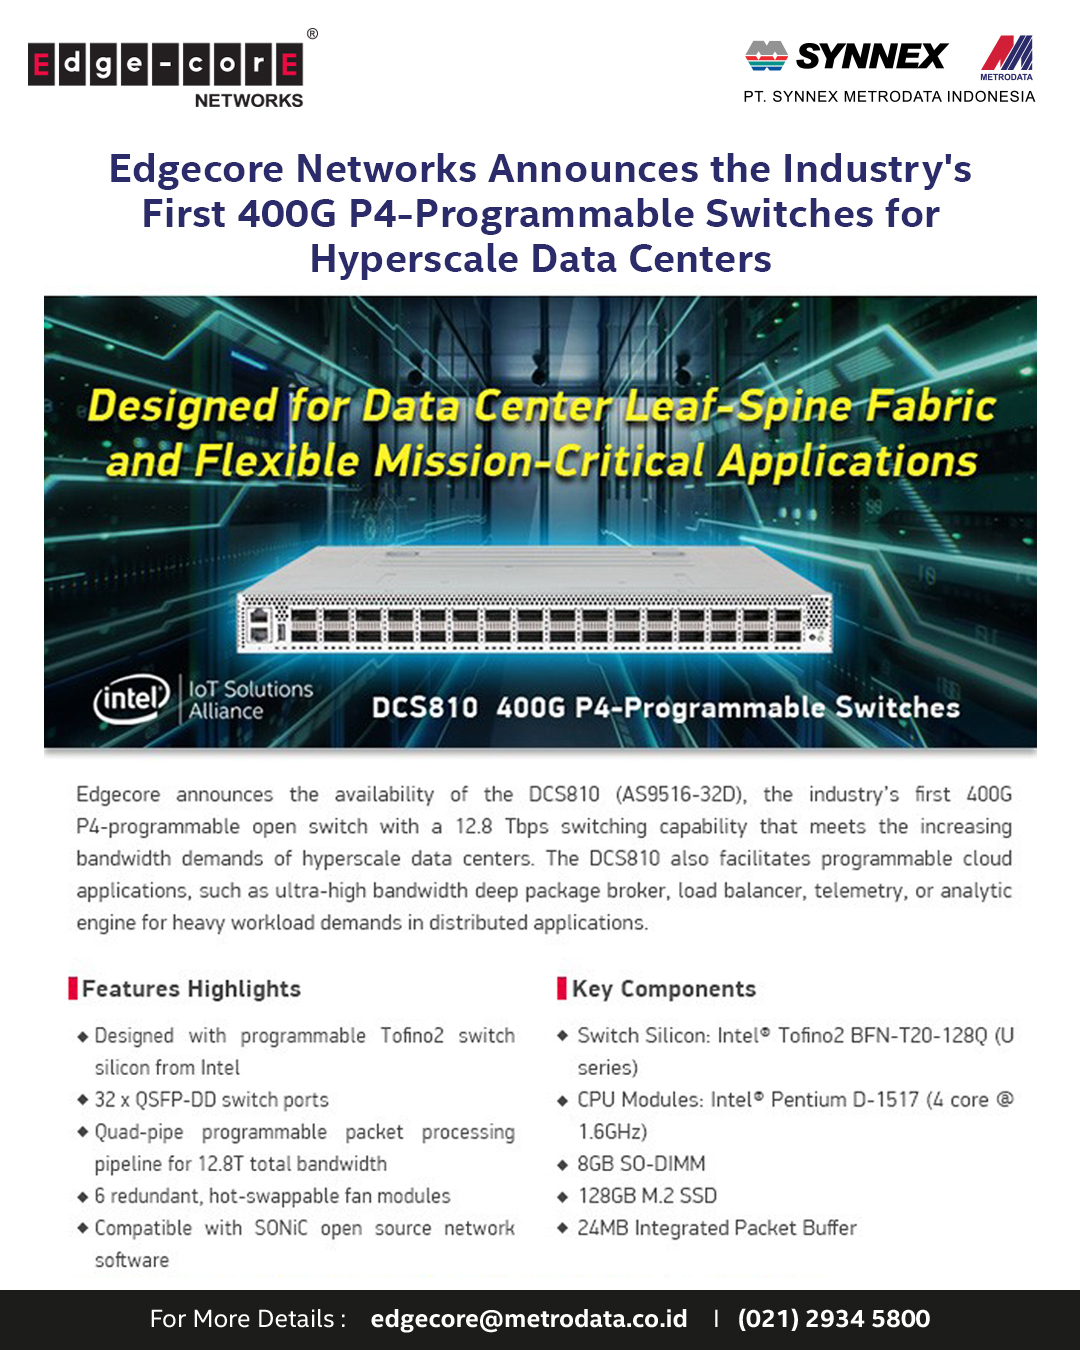 https://www.synnexmetrodata.com/wp-content/uploads/2021/09/EDM-Edgecore-Networks-Announces-the-Industrys-First-400G-P4-Programmable-Switches-for-Hyperscale-Data-Centers.jpg